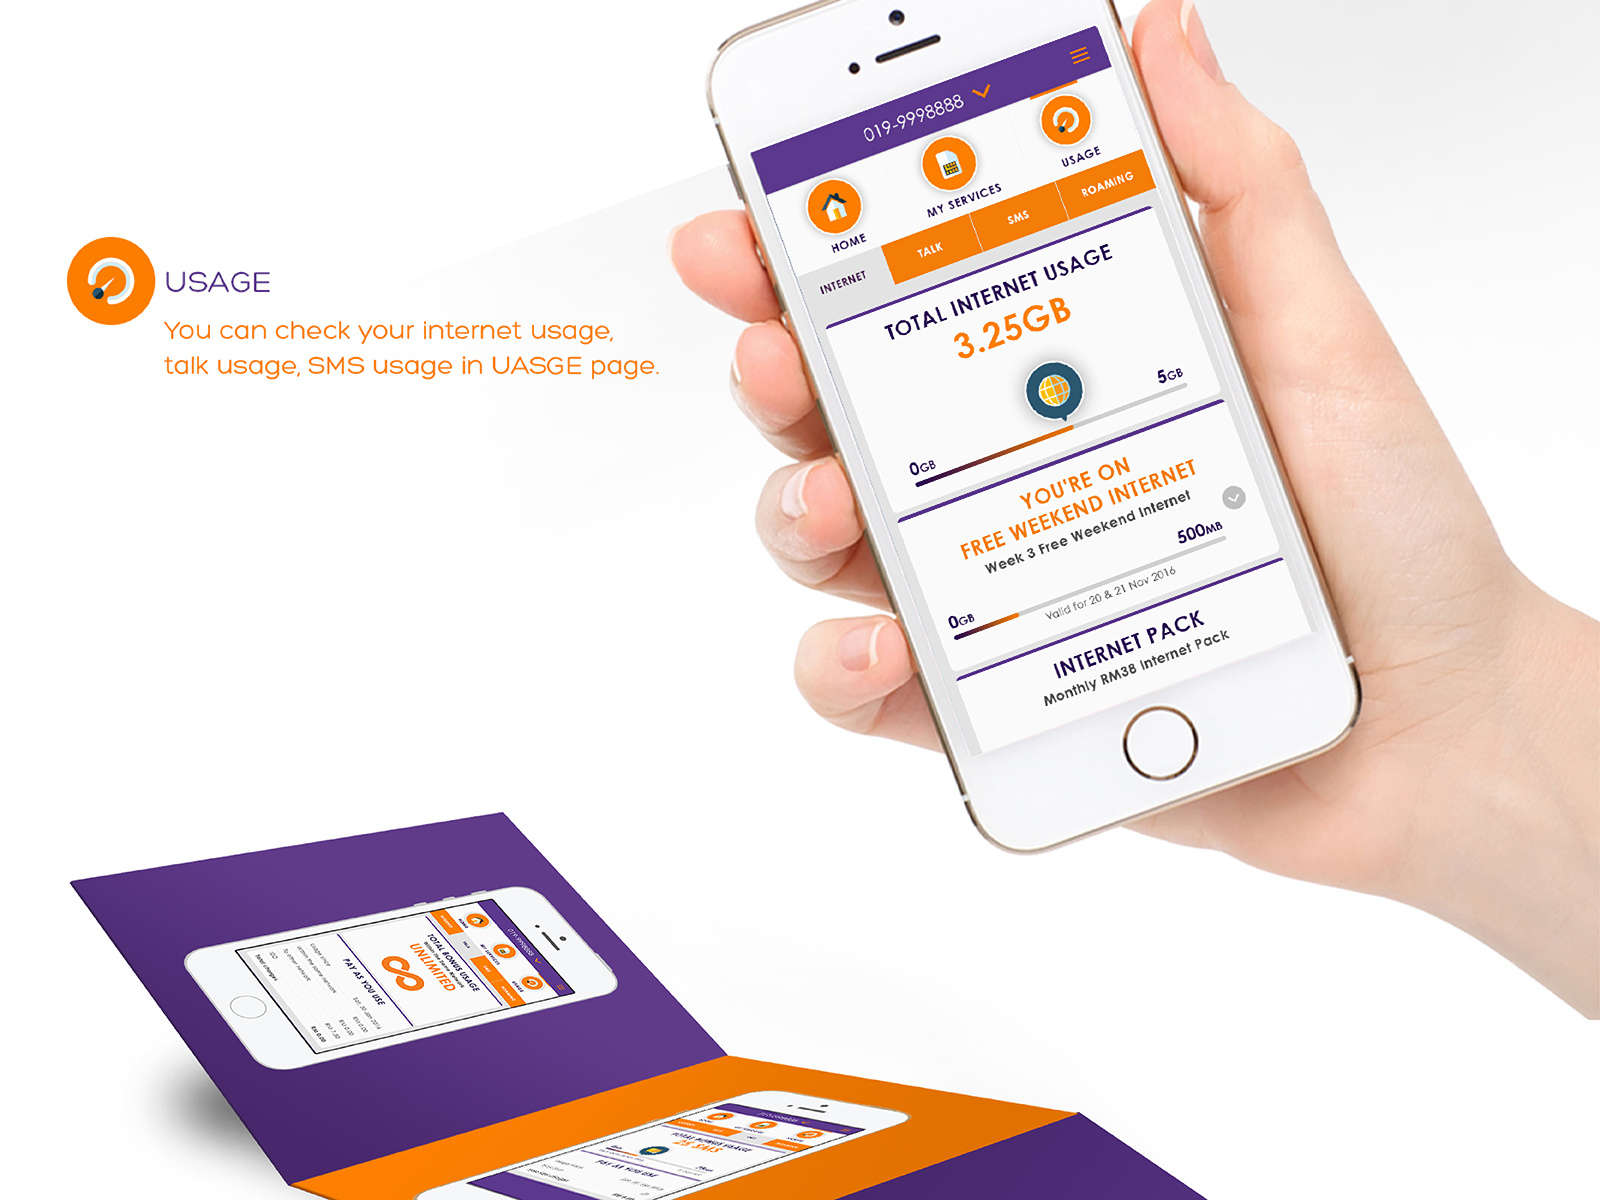 Xpax mobile app usage pages tells users their internet usage and talk-time usage.